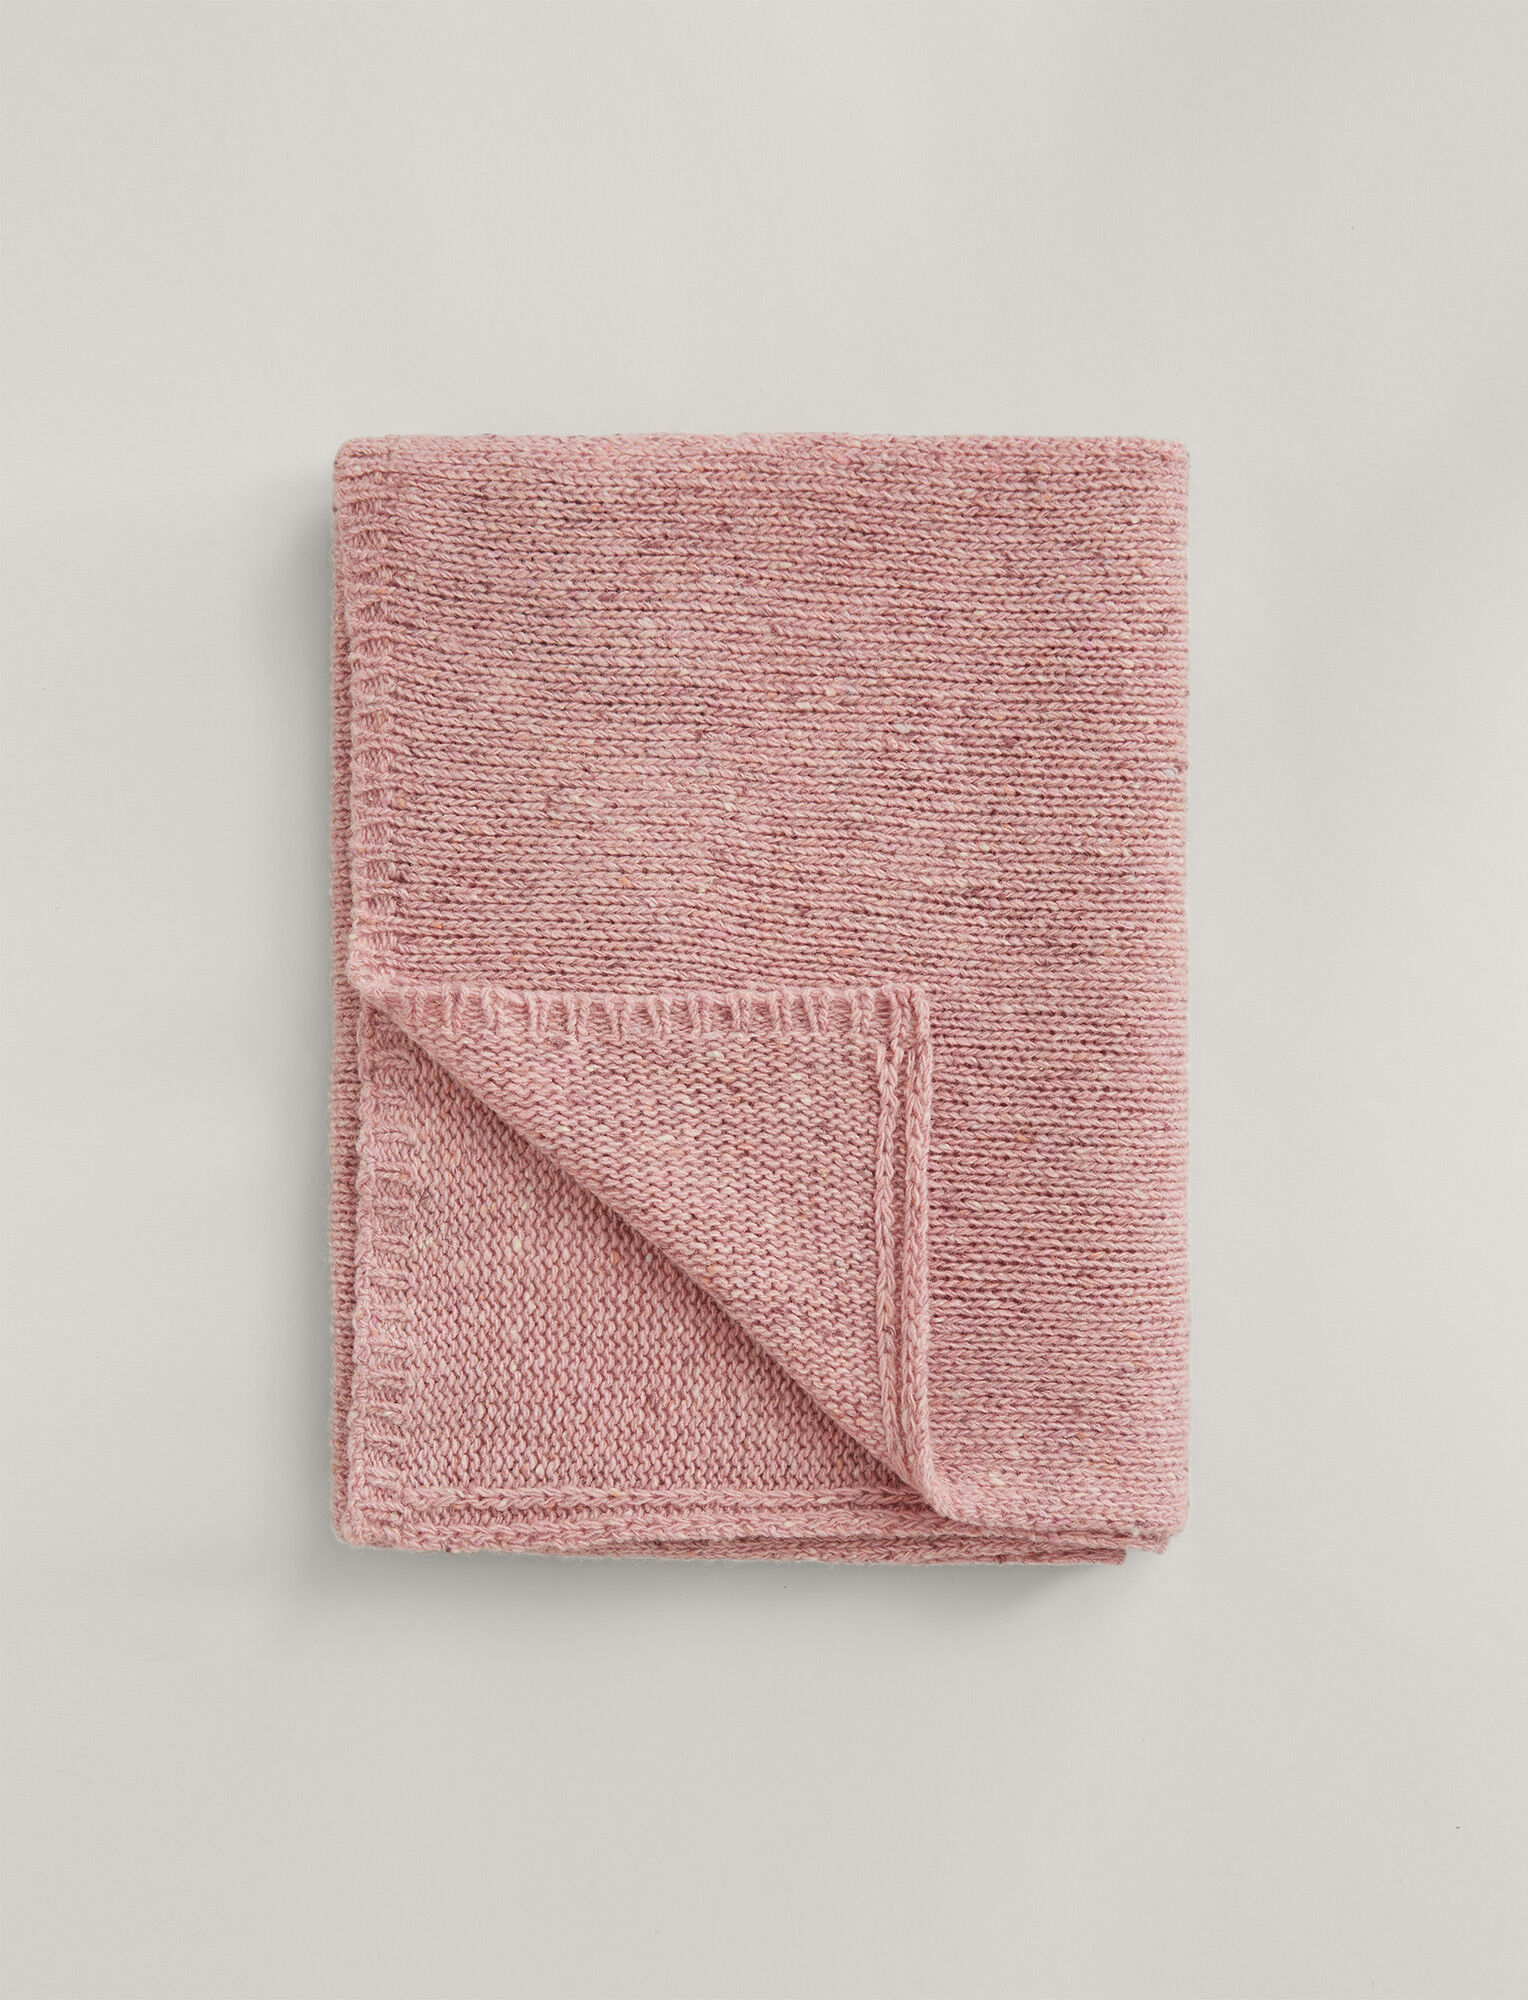 Joseph, Tweed Knit Scarf, in PINK